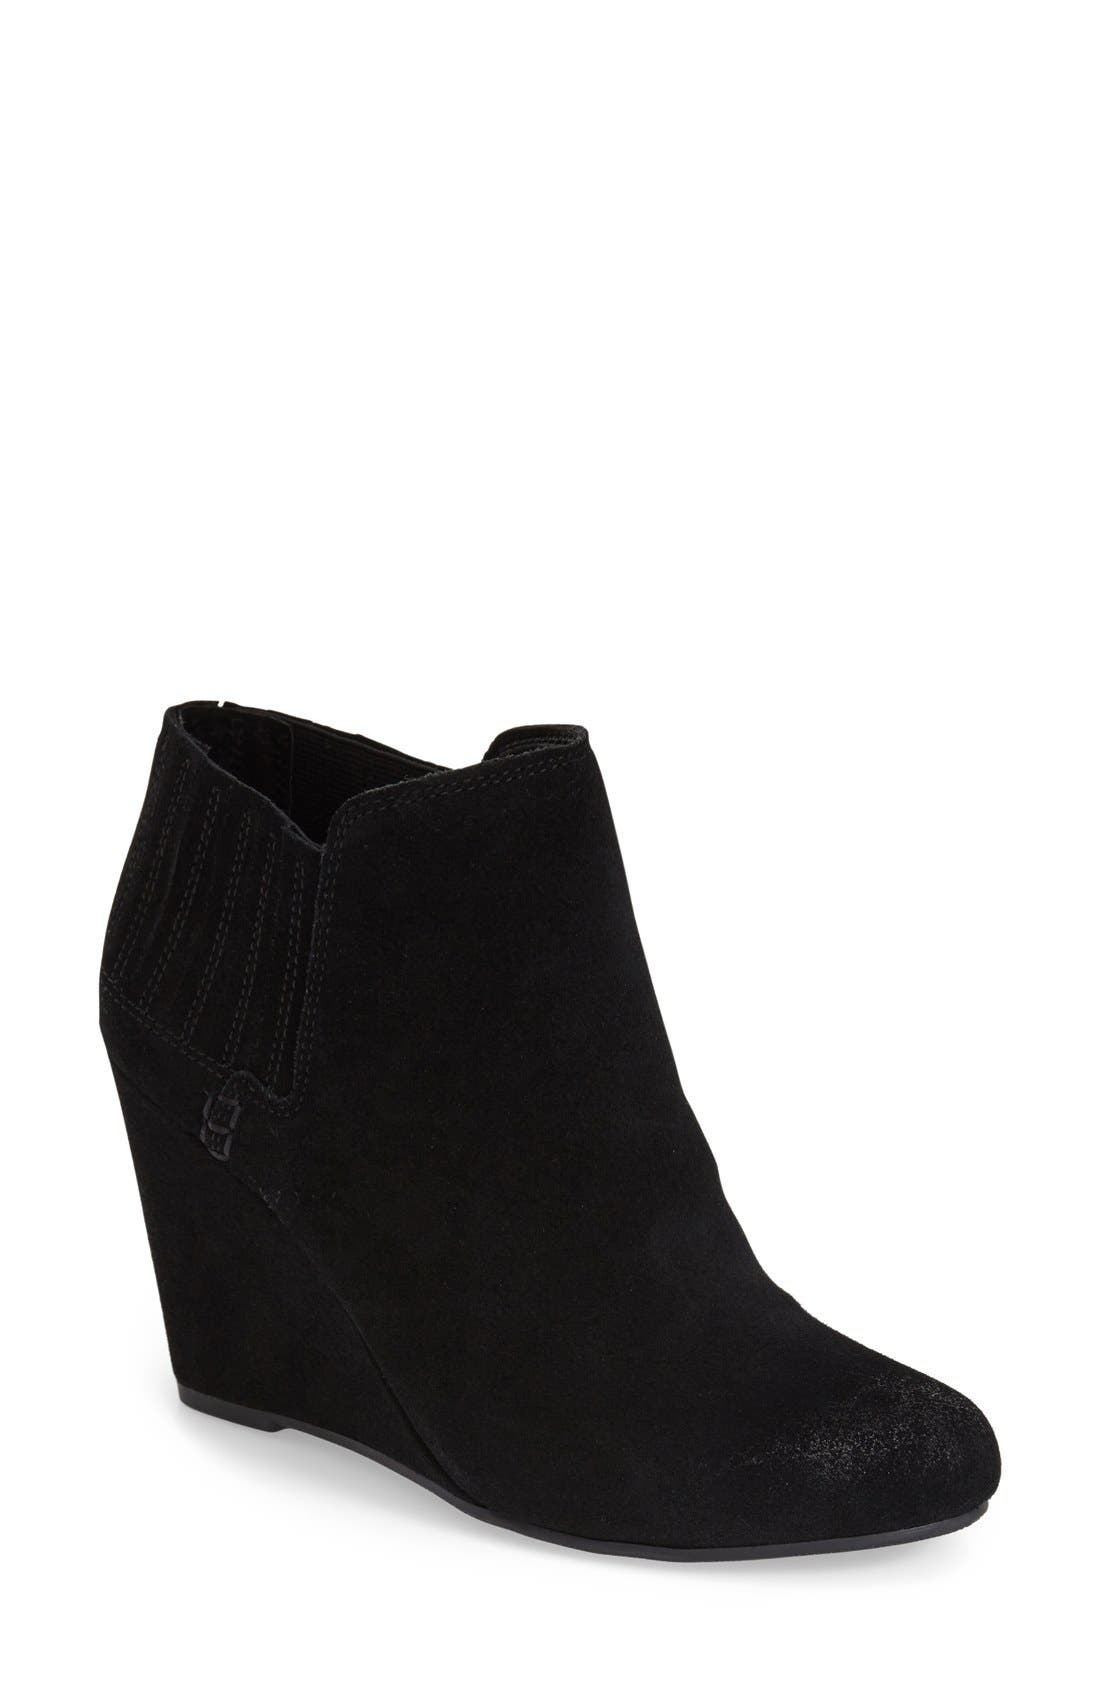 'Gwynn' Wedge Bootie,                         Main,                         color, 001